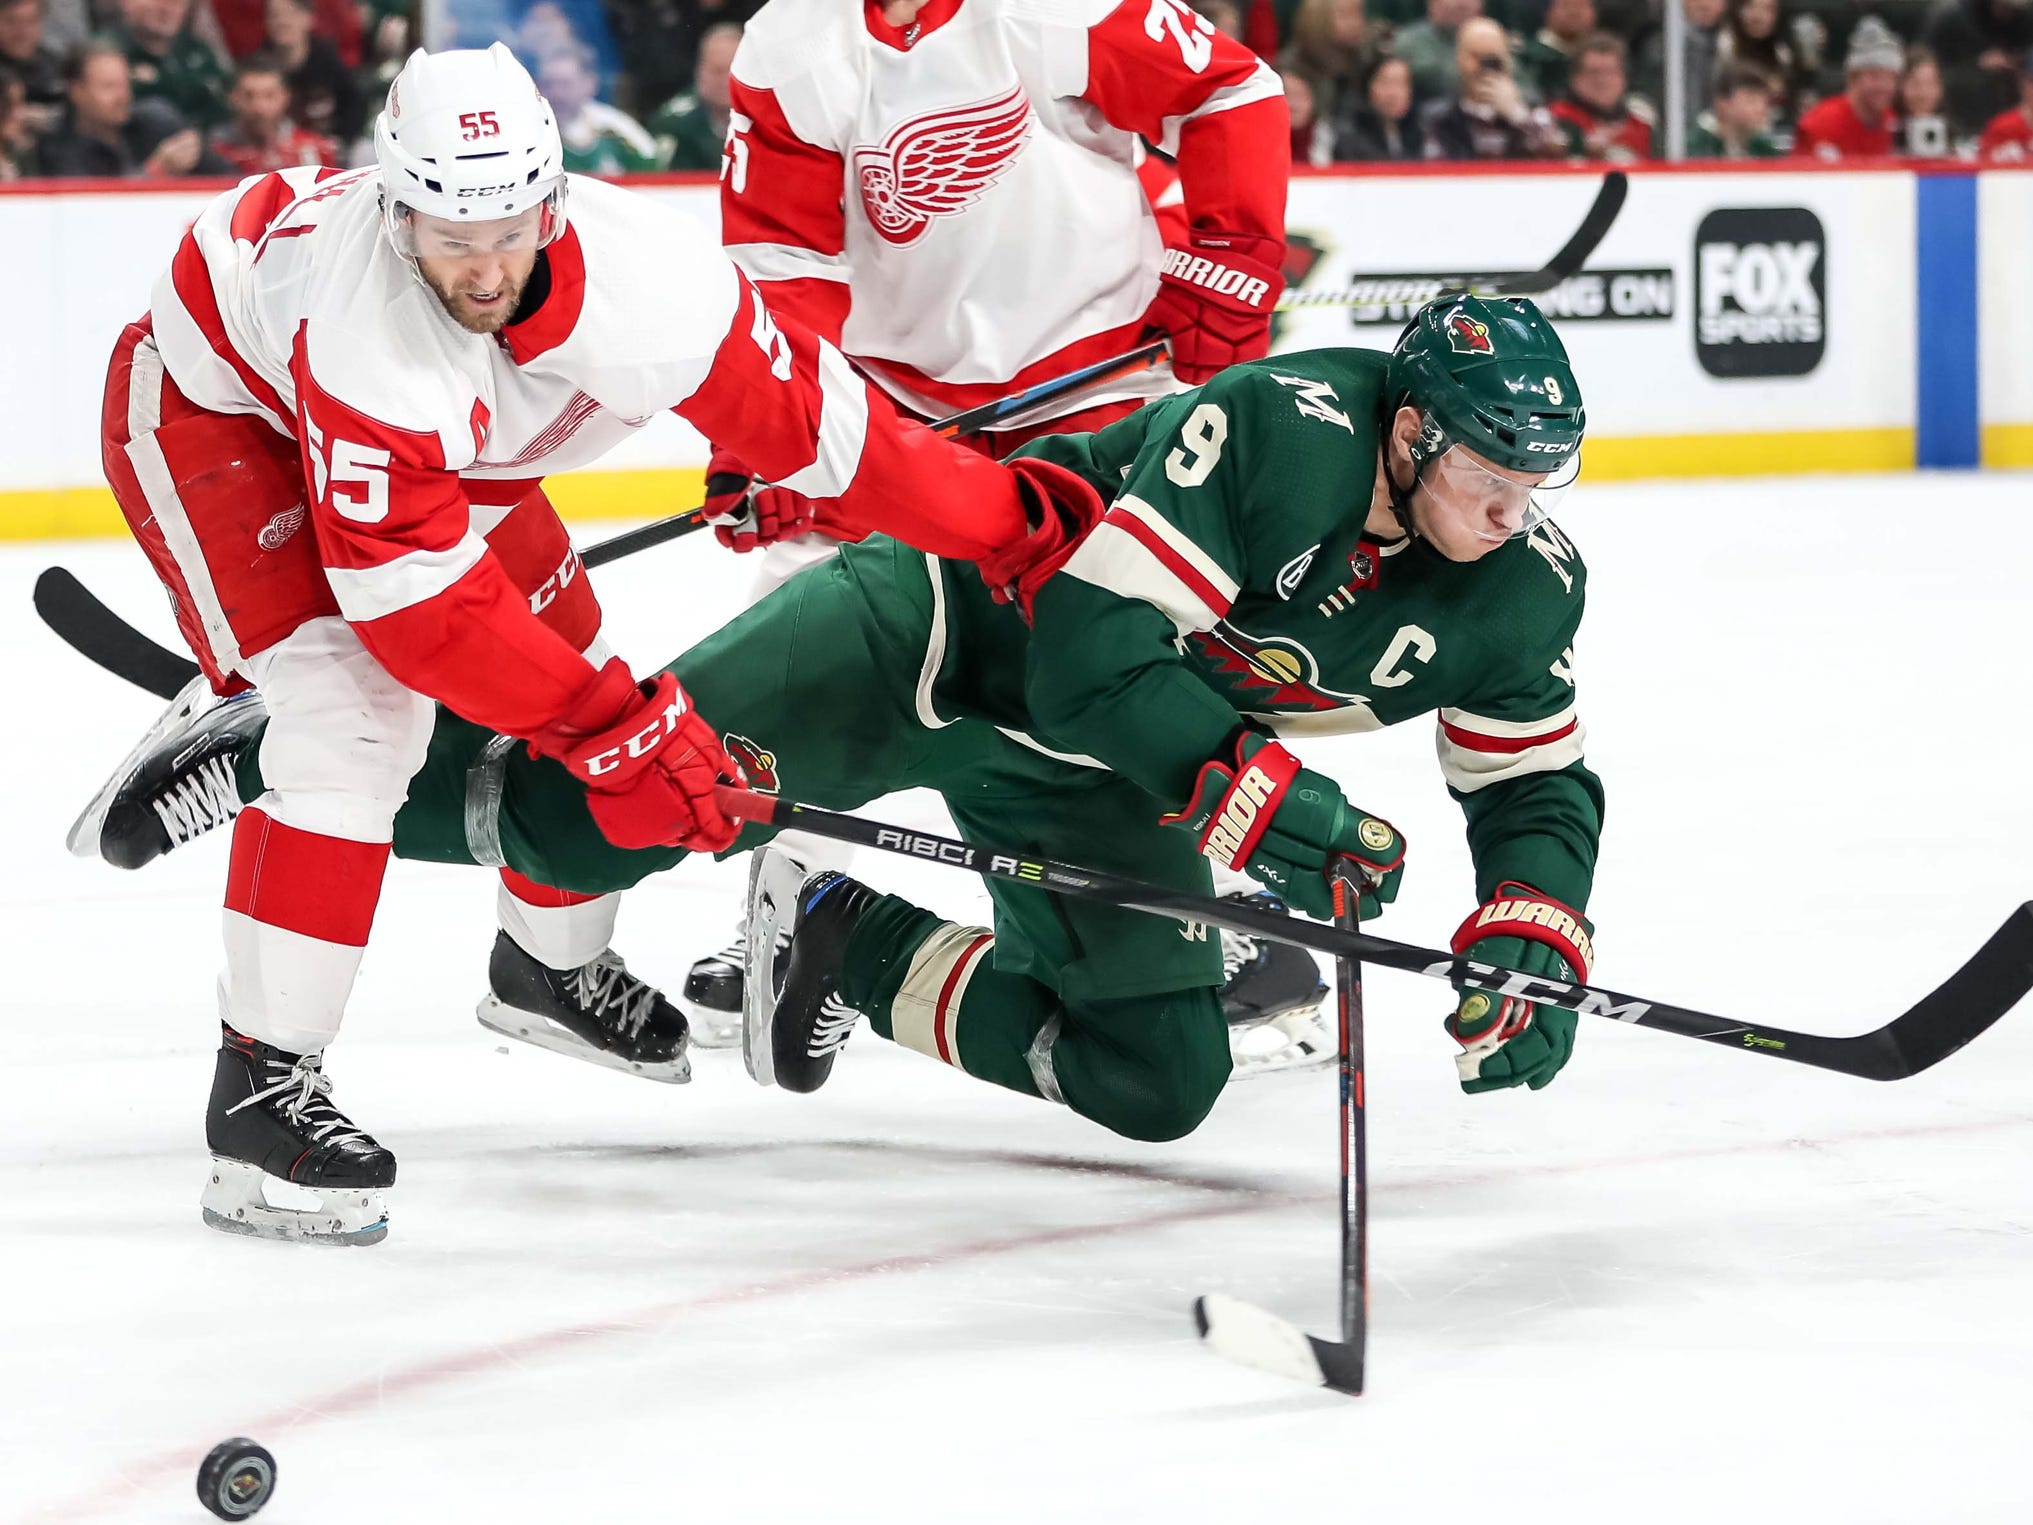 Red Wings defenseman Niklas Kronwall hits Wild forward Mikko Koivu during the second period of the Wings' 5-2 win on Saturday, Jan. 12, 2019, in St. Paul, Minn.